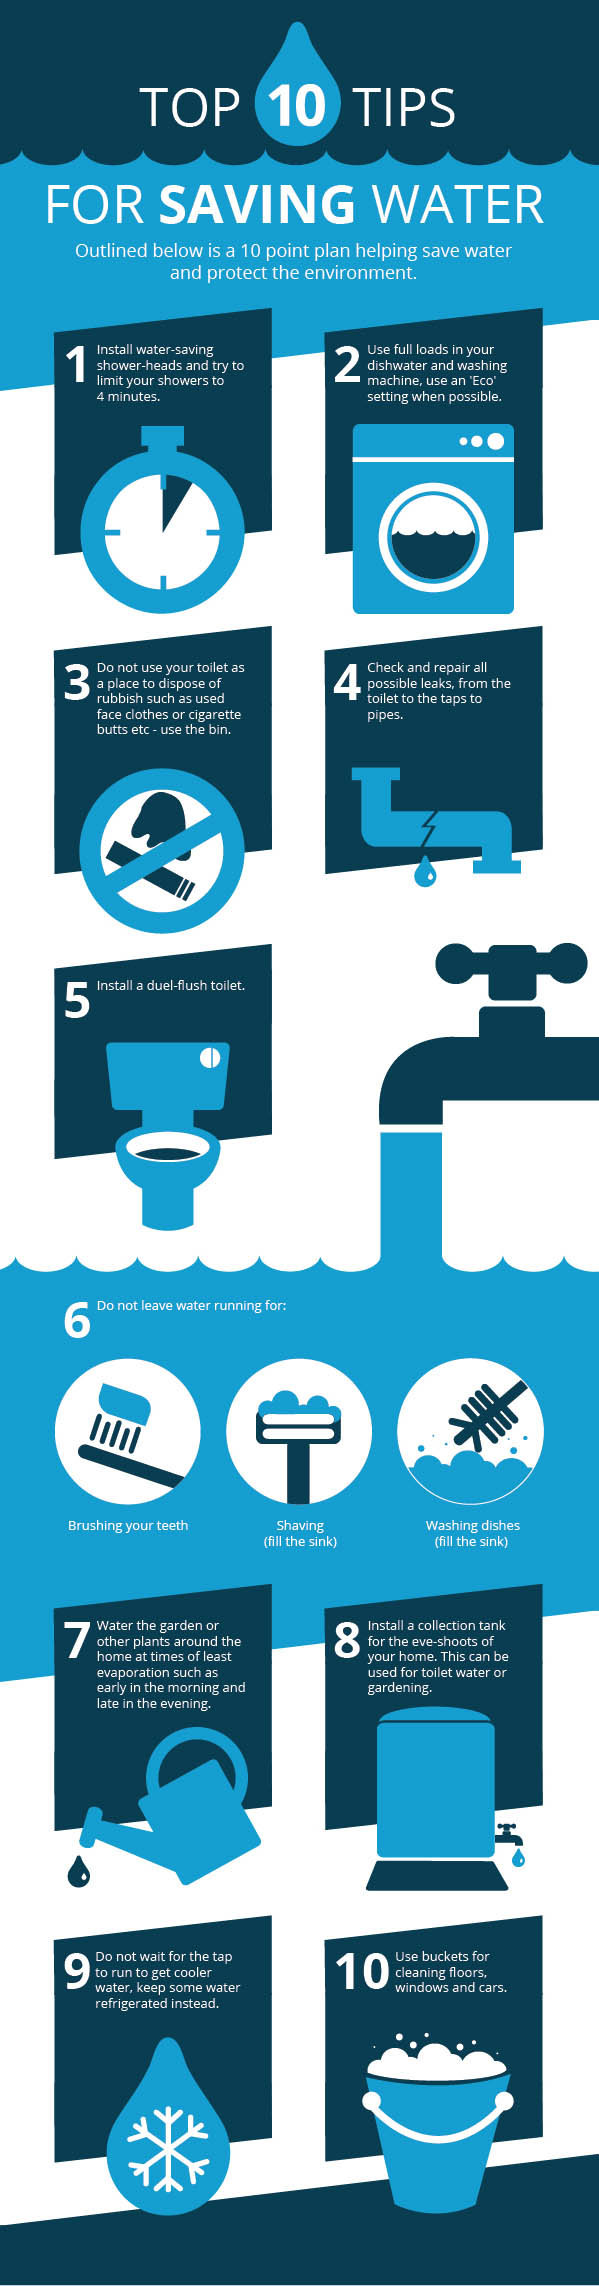 Top 10 tips for Saving Water [Infographic] | ecogreenlove